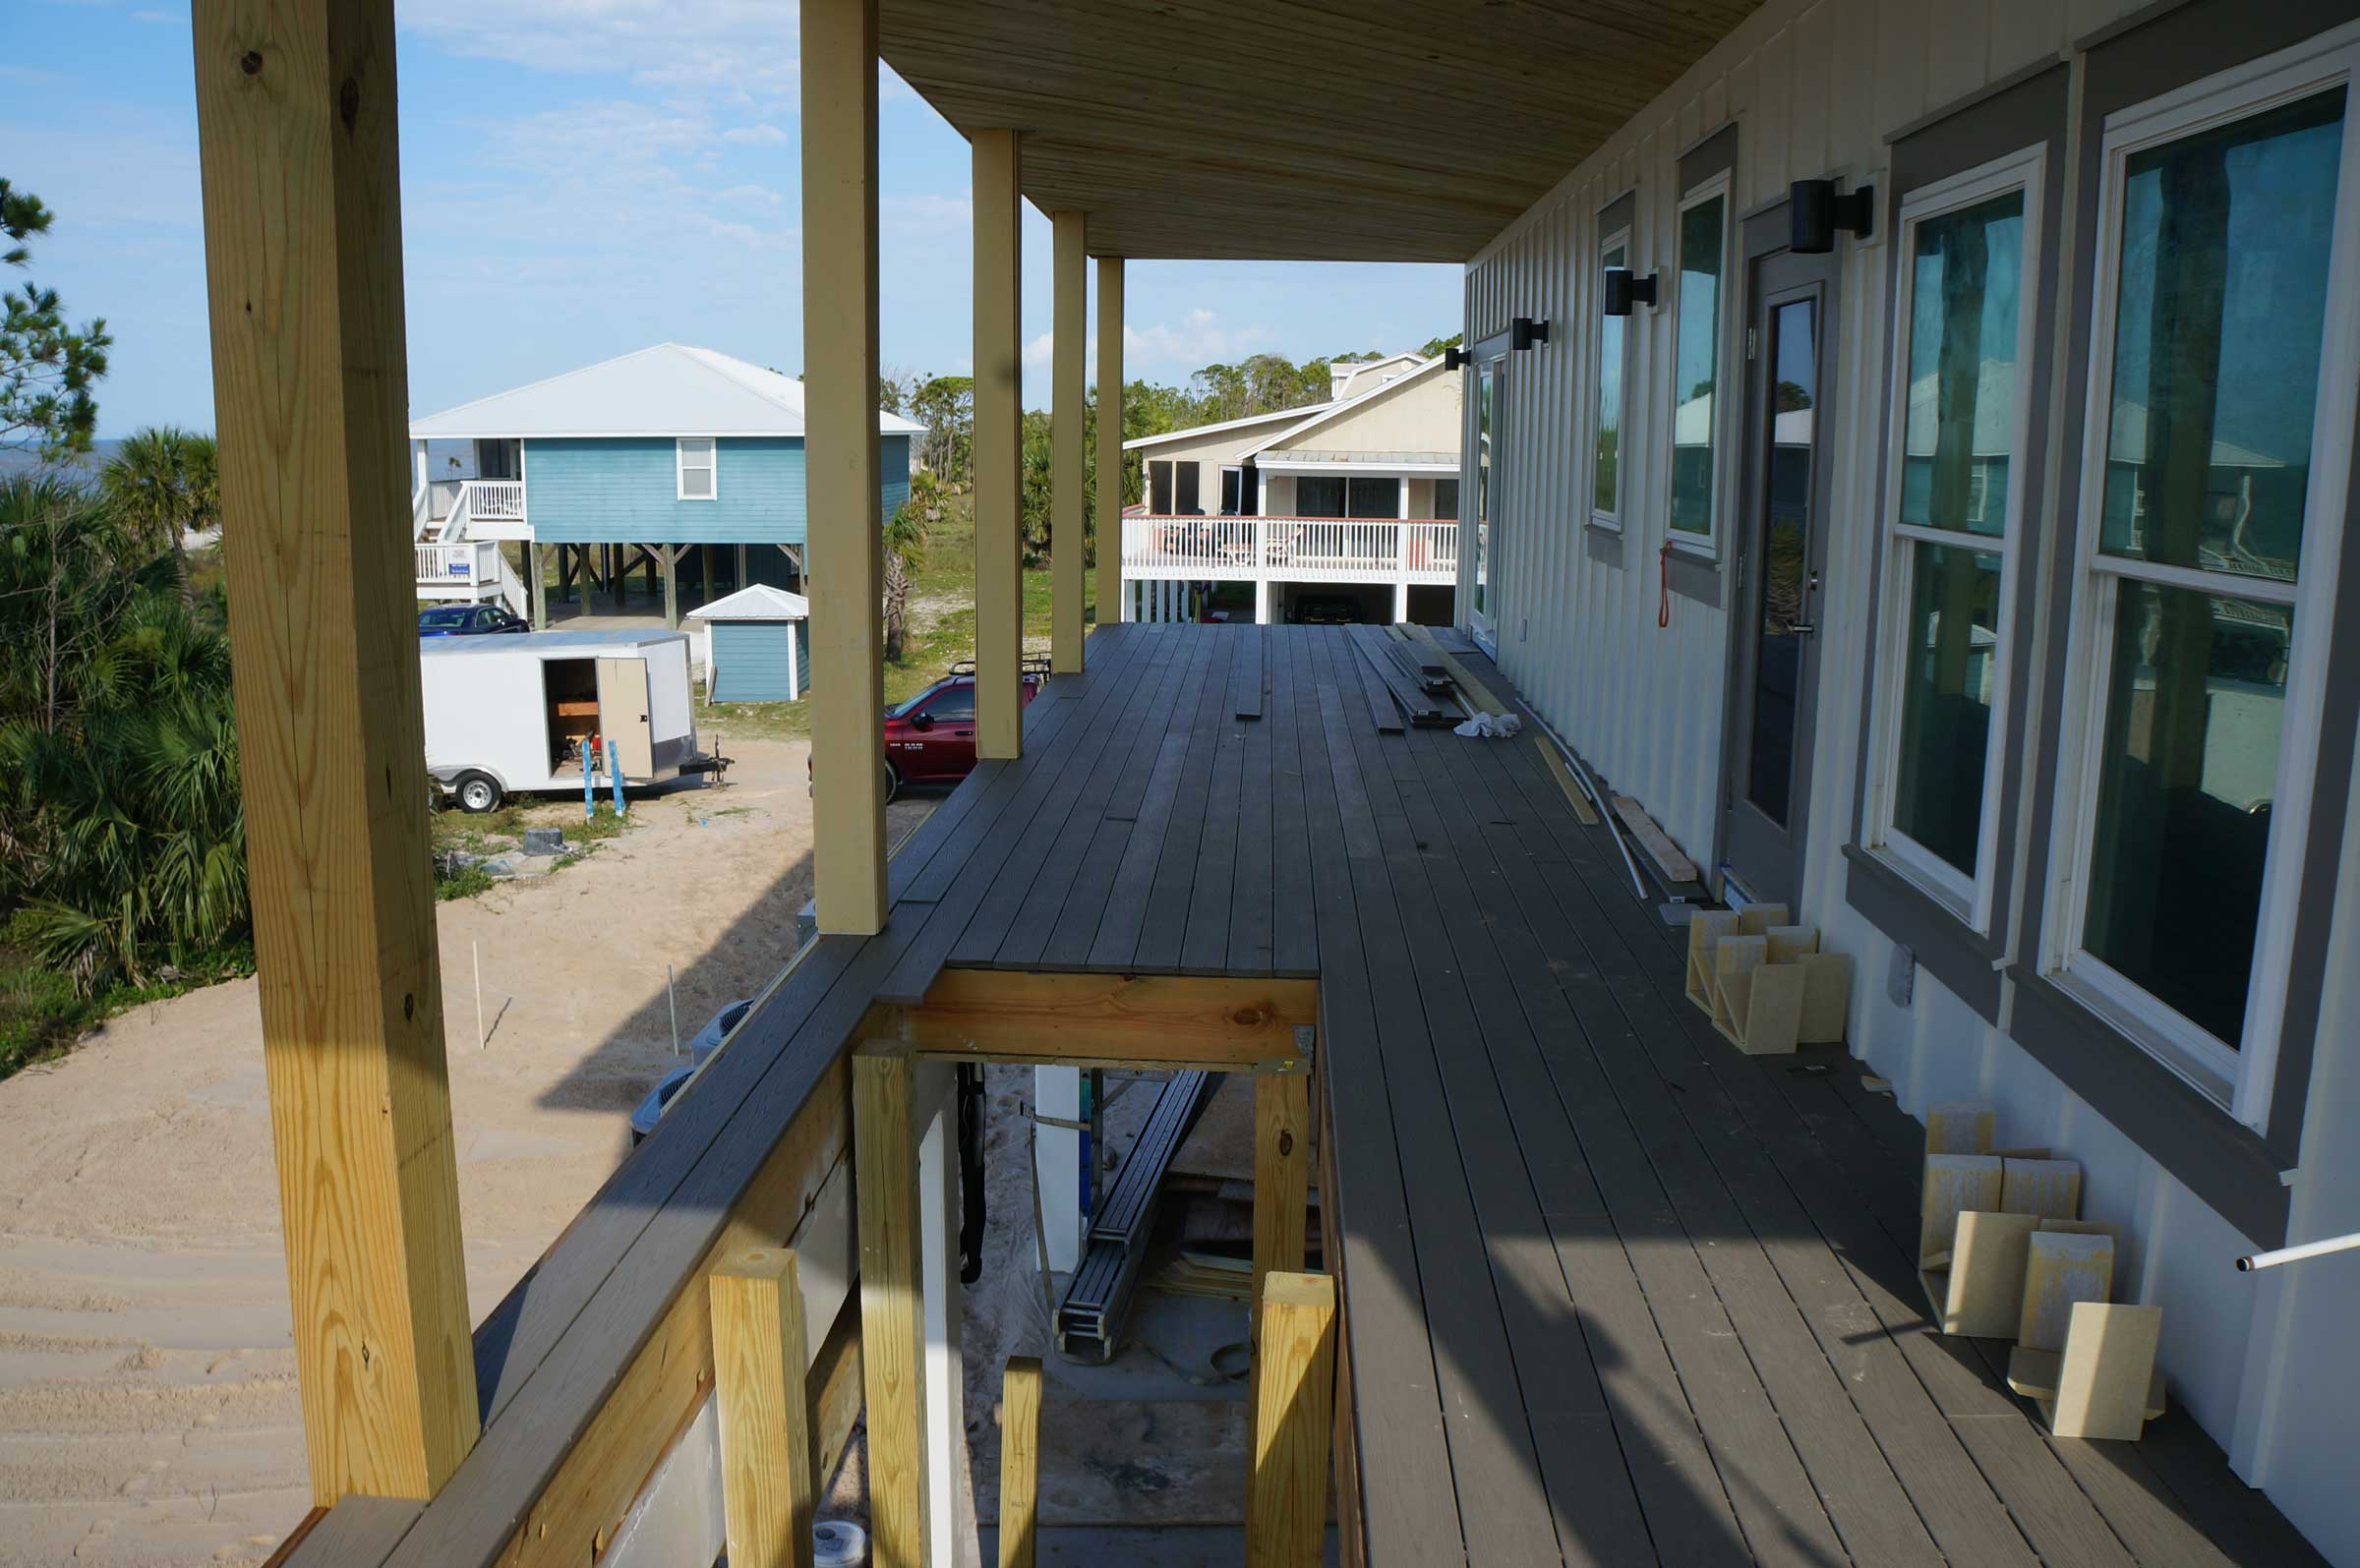 External stairway being built from ground floor to second floor deck. Contact us to discuss your new Mexico Beach home.